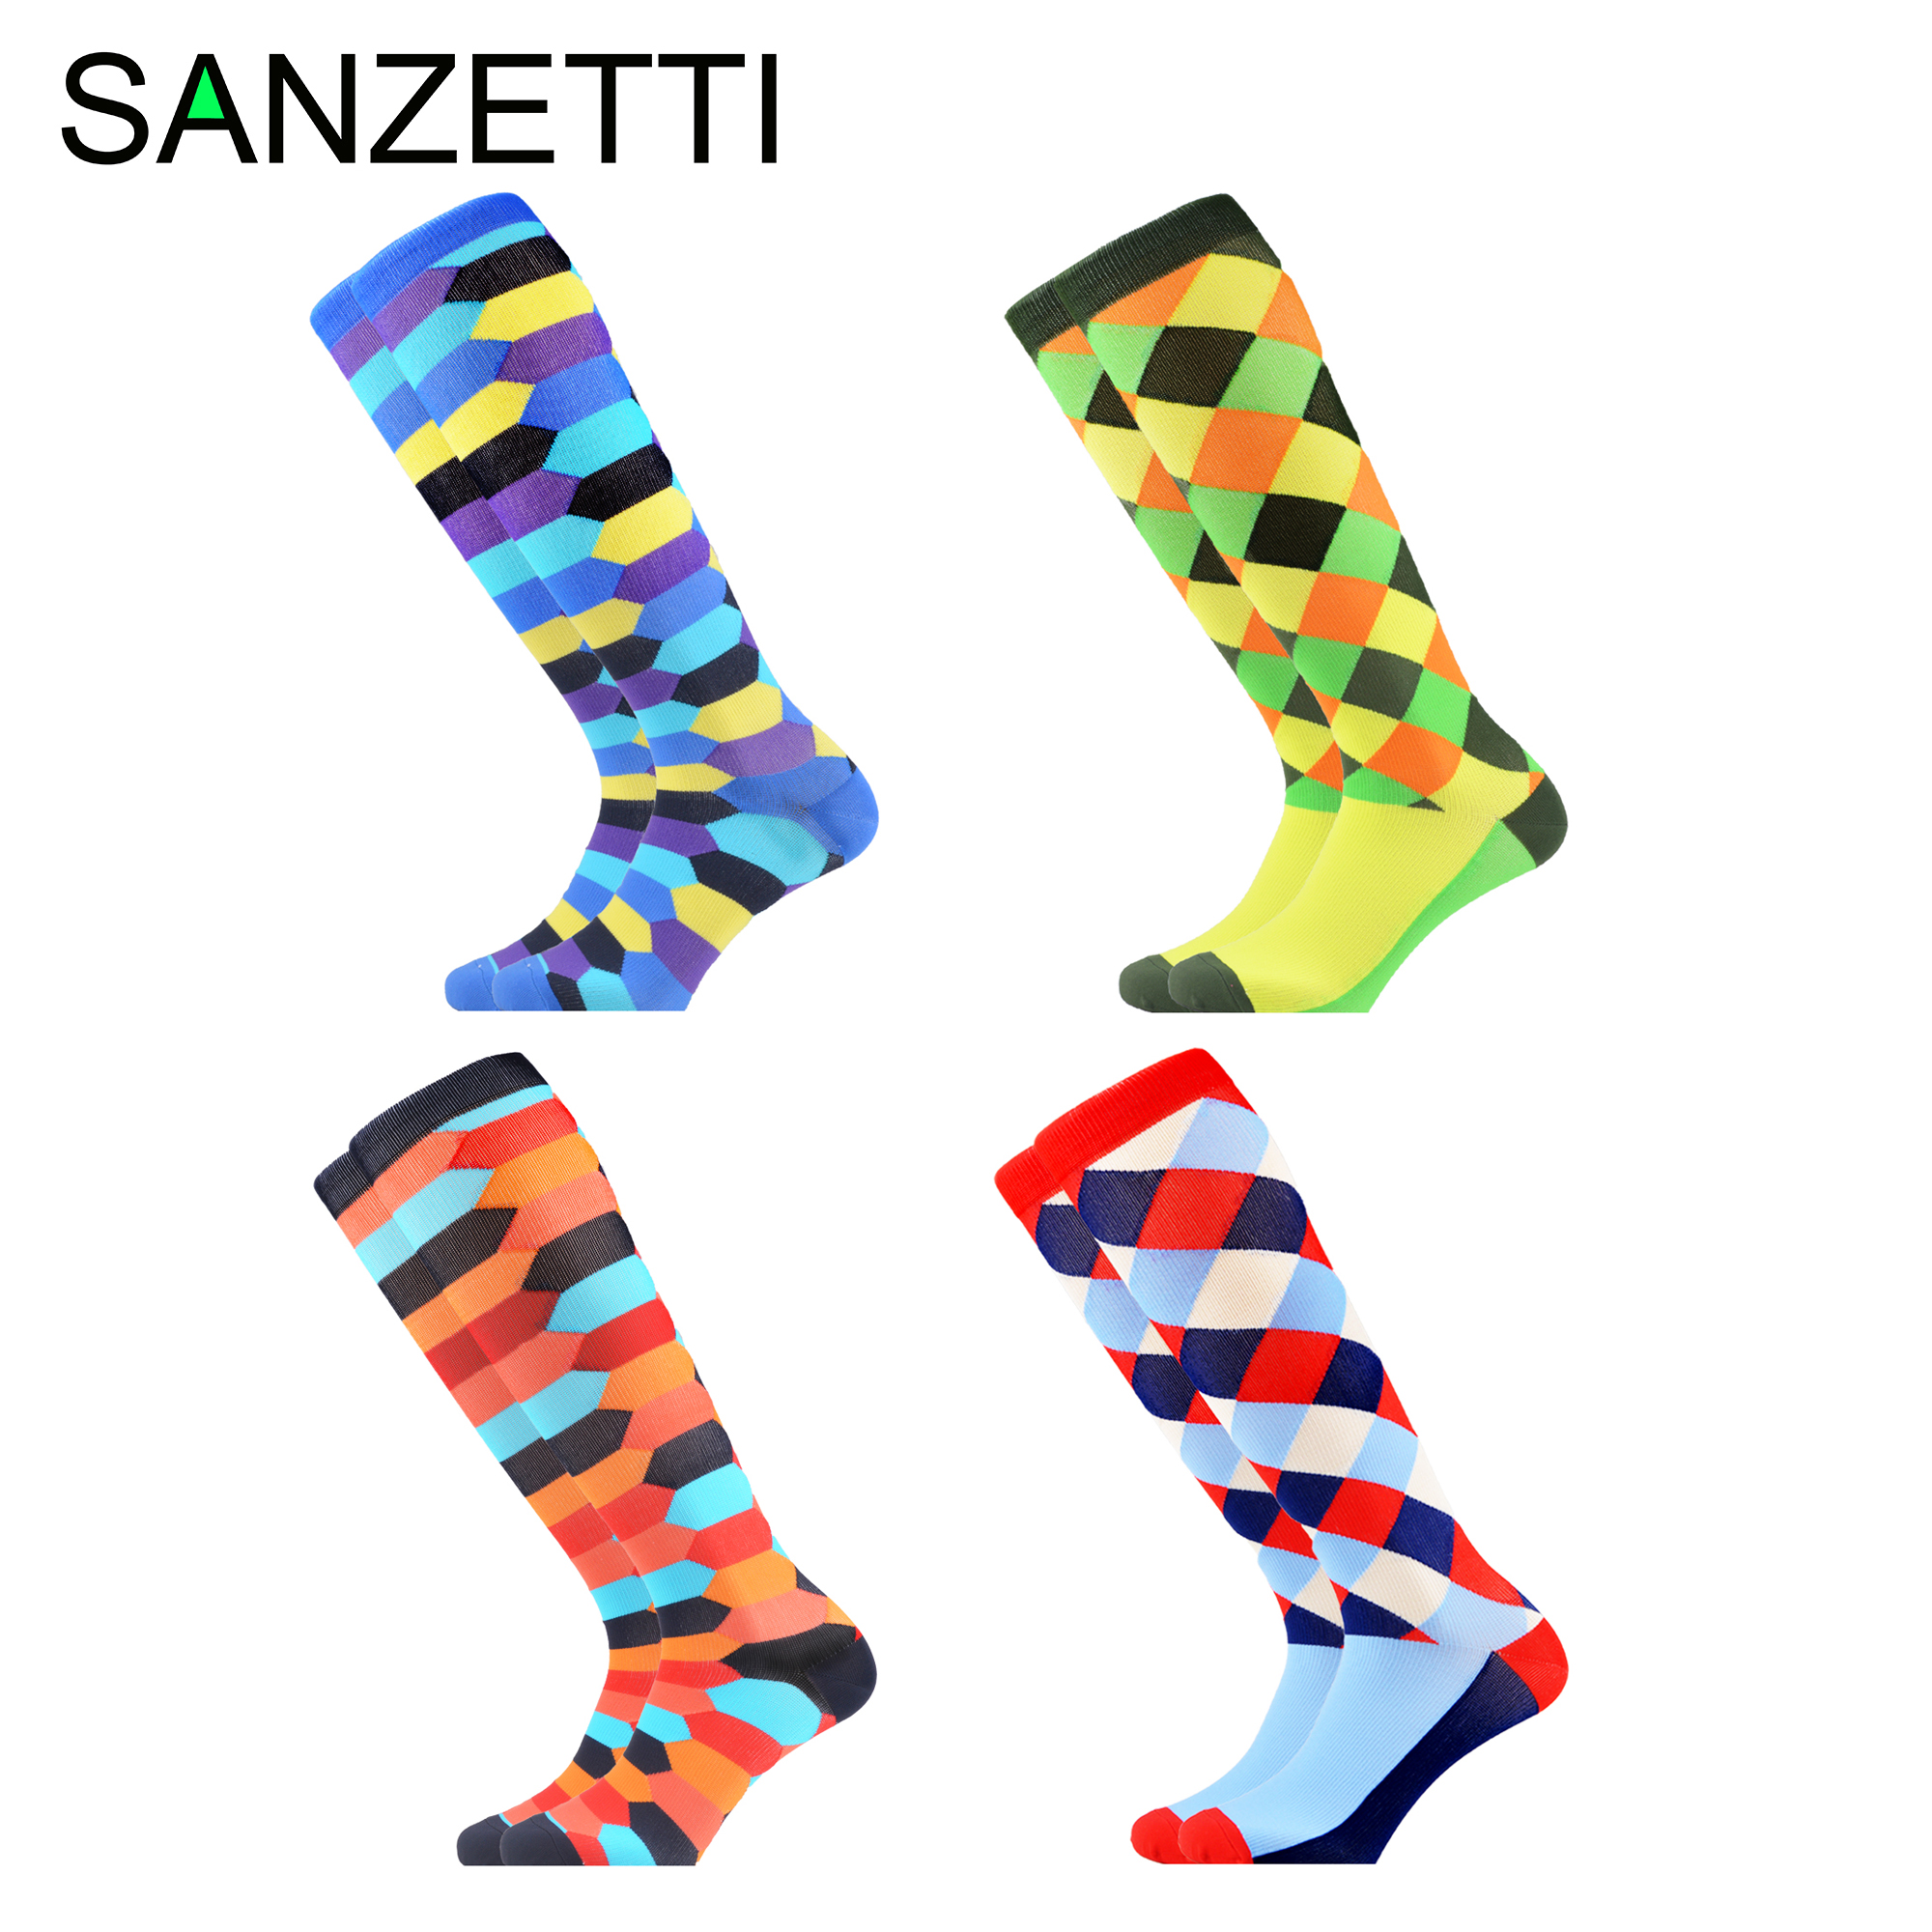 SANZETTI 4 Pairs/Lot Women Happy Socks Combed Cotton Compression Socks Striped Below Knee Anti-Fatigue Long Colorful Socks